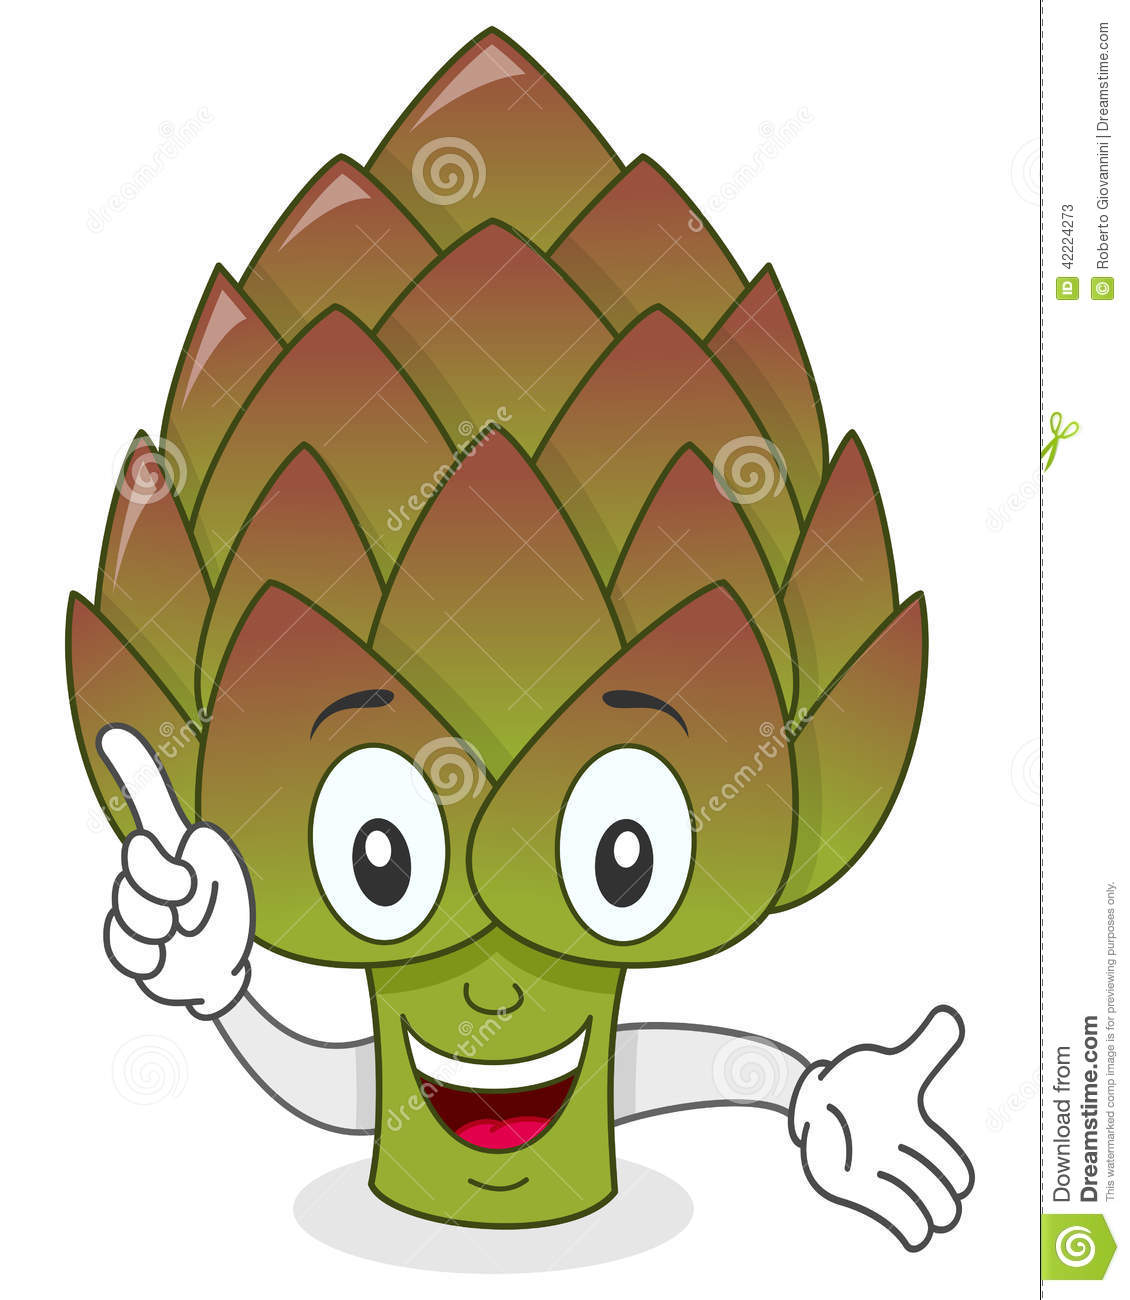 Stock Illustration Smiling Artichoke Cartoon Character Cute Isolated White Background Eps File Available Image42224273 moreover Whistle With Your Tongue together with Royalty Free Stock Image Pond Image26545426 moreover Sidney S Patient File 570607932 likewise Birmingham Christmas Vintage Tea Party. on cartoon mouth sounds